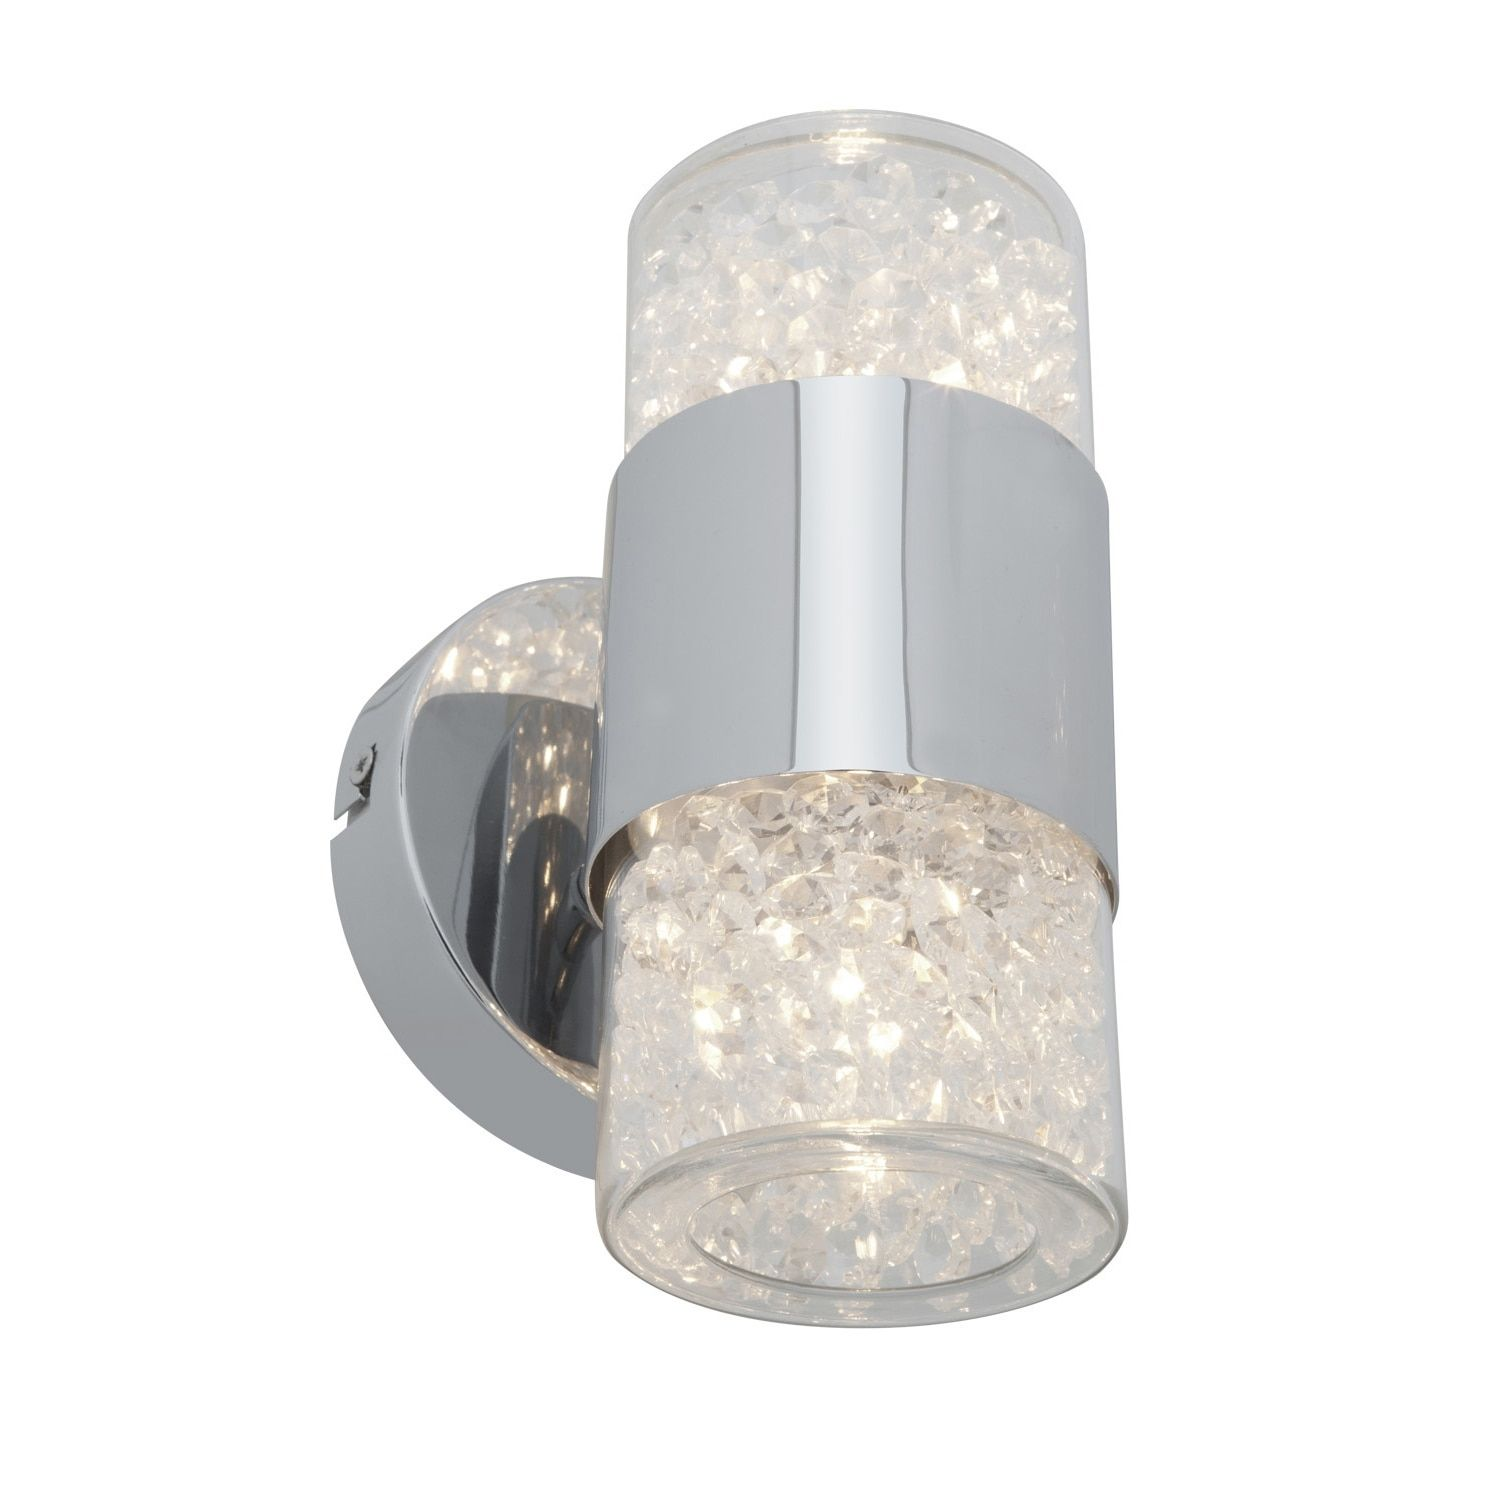 Wall Sconce Lighting Home Goods: Free Shipping on orders over $45 at ...